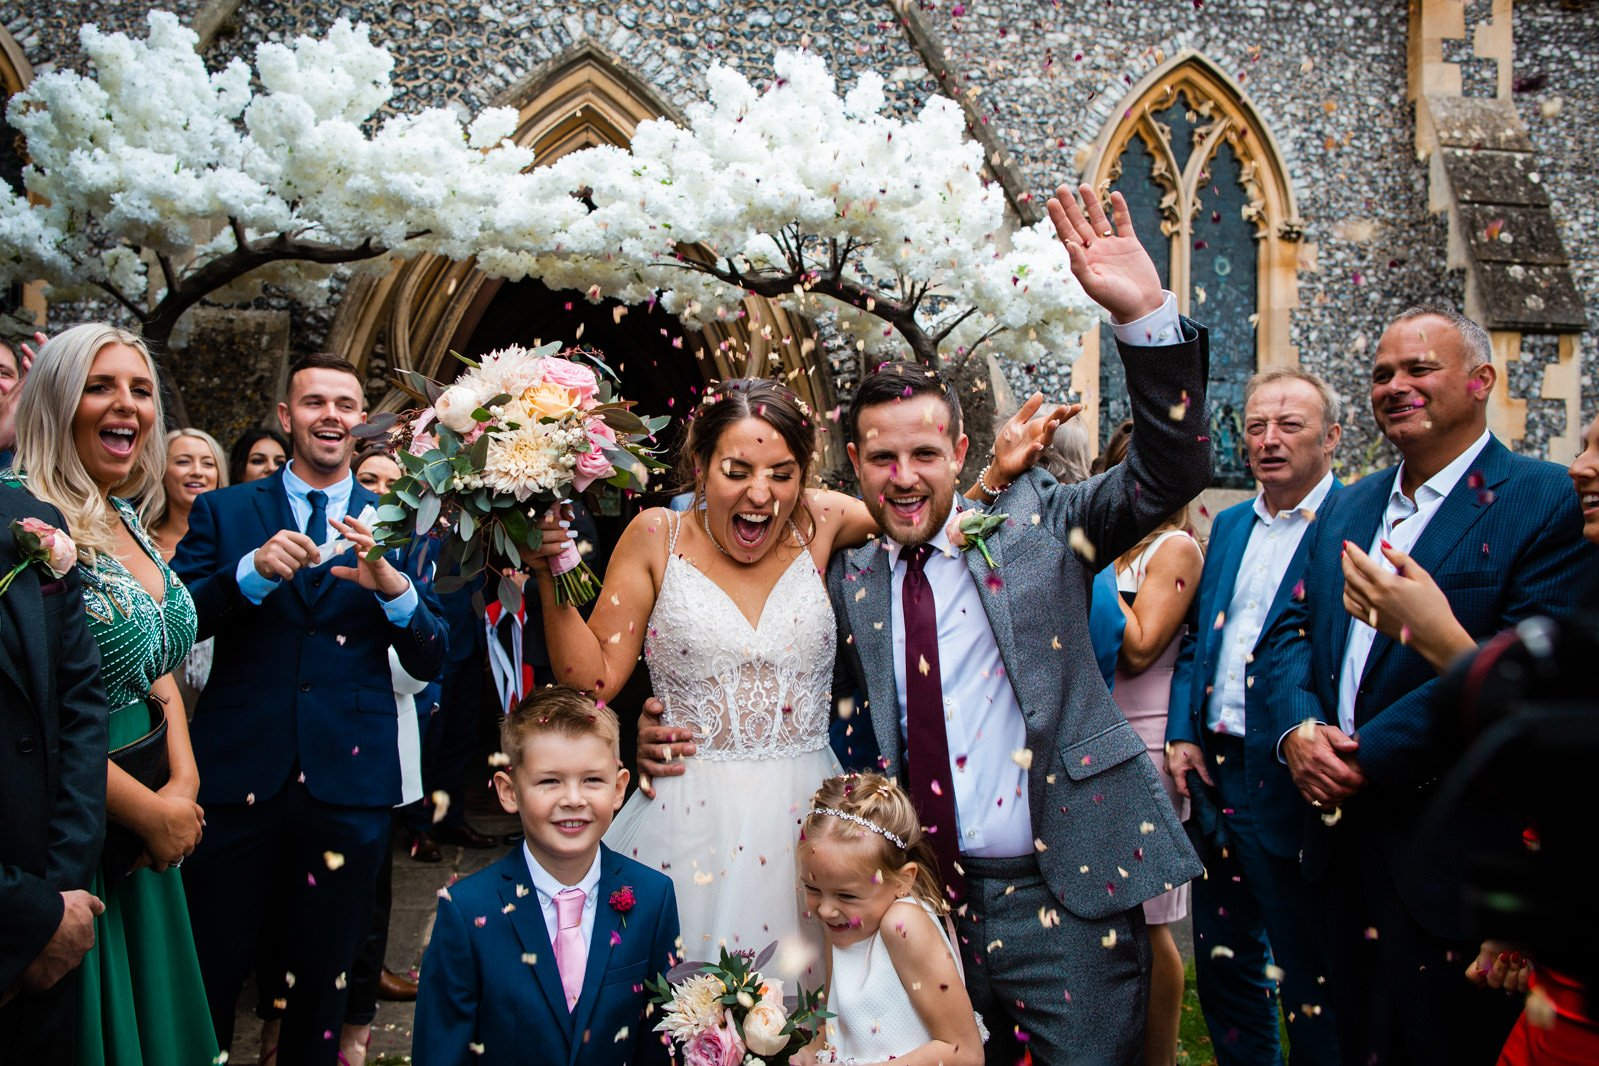 The Elephant Pangbourne Wedding - Stunning Kayleigh & Shane 39